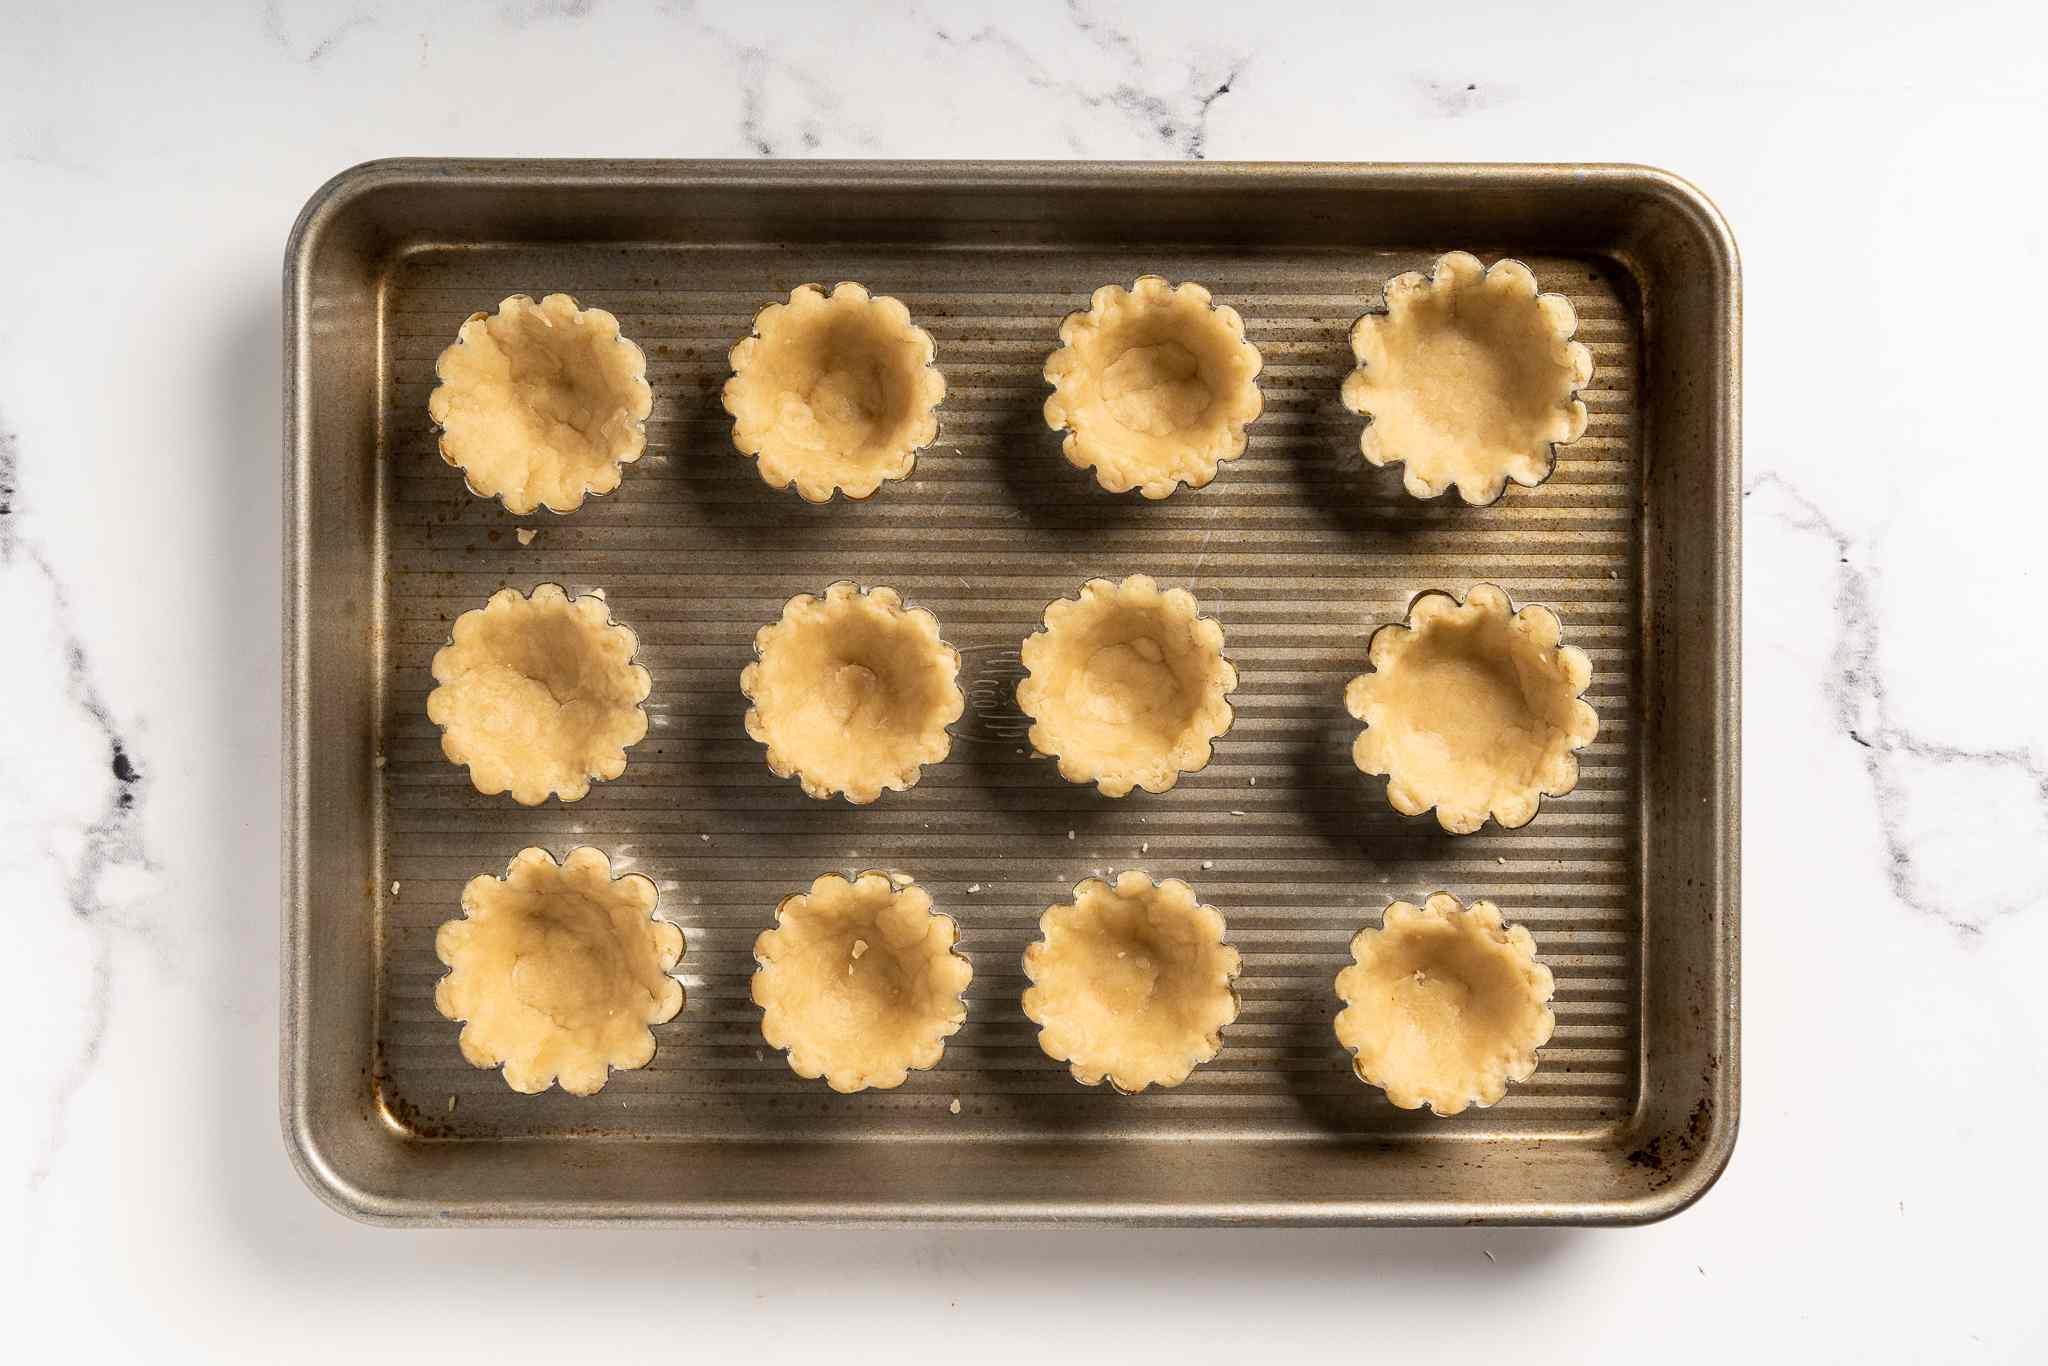 Tart molds lined with egg tart pastry on a small baking sheet